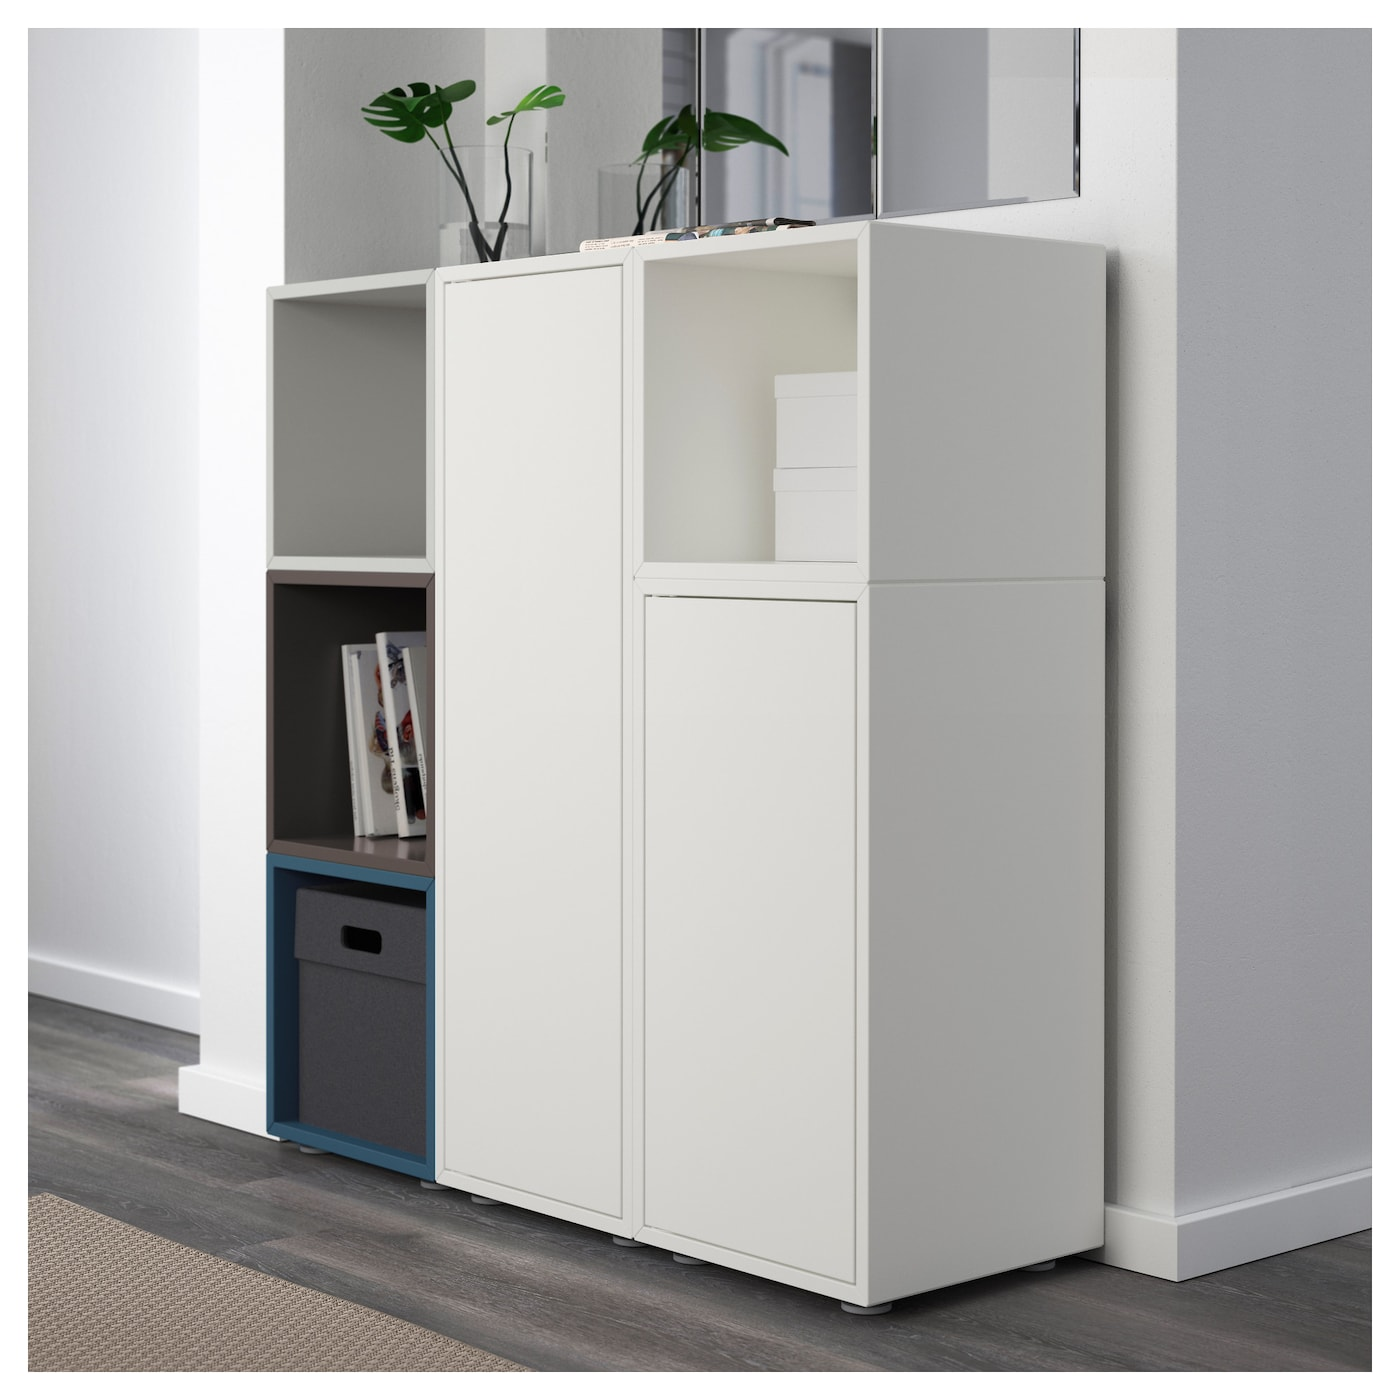 eket cabinet combination with feet multicolour 2 105x35x107 cm ikea. Black Bedroom Furniture Sets. Home Design Ideas